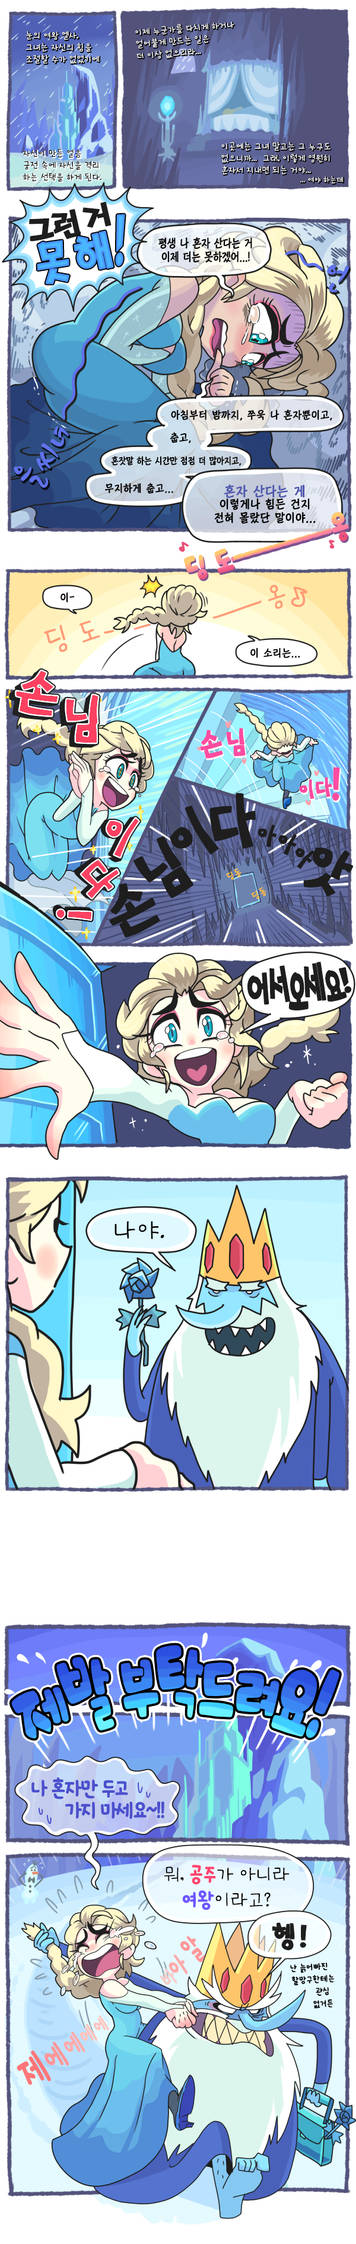 Frozen Comic By Gashi Gashi Korean translation